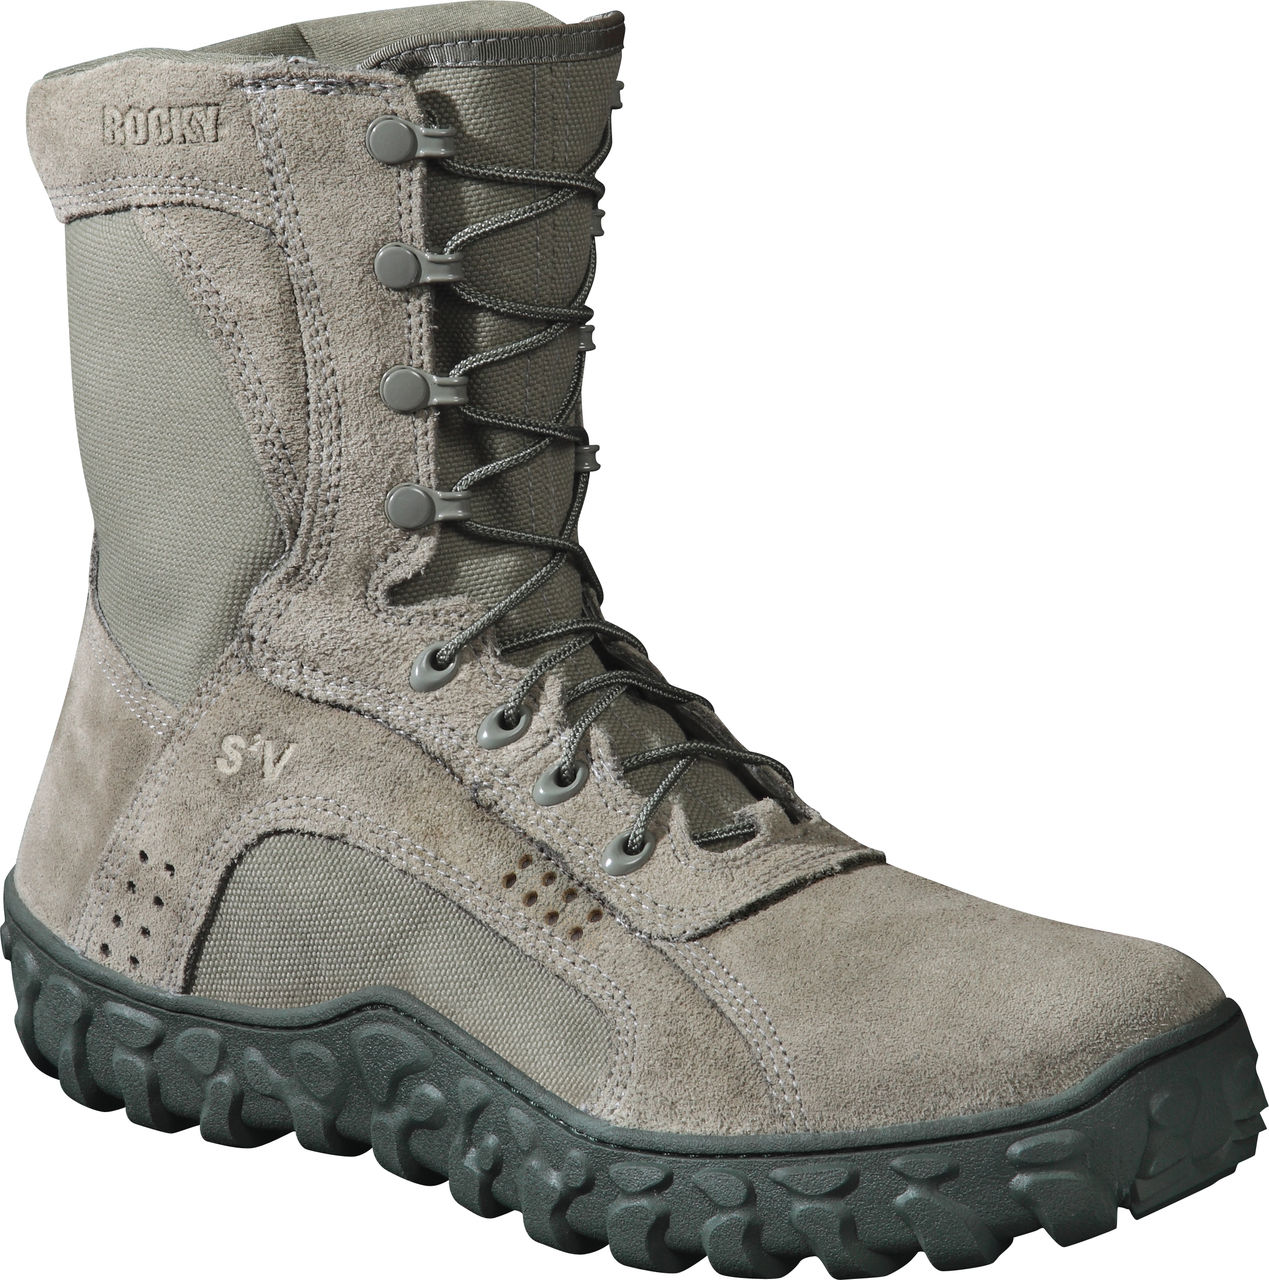 Rocky 103 S2v Vented Military Boots Ebay